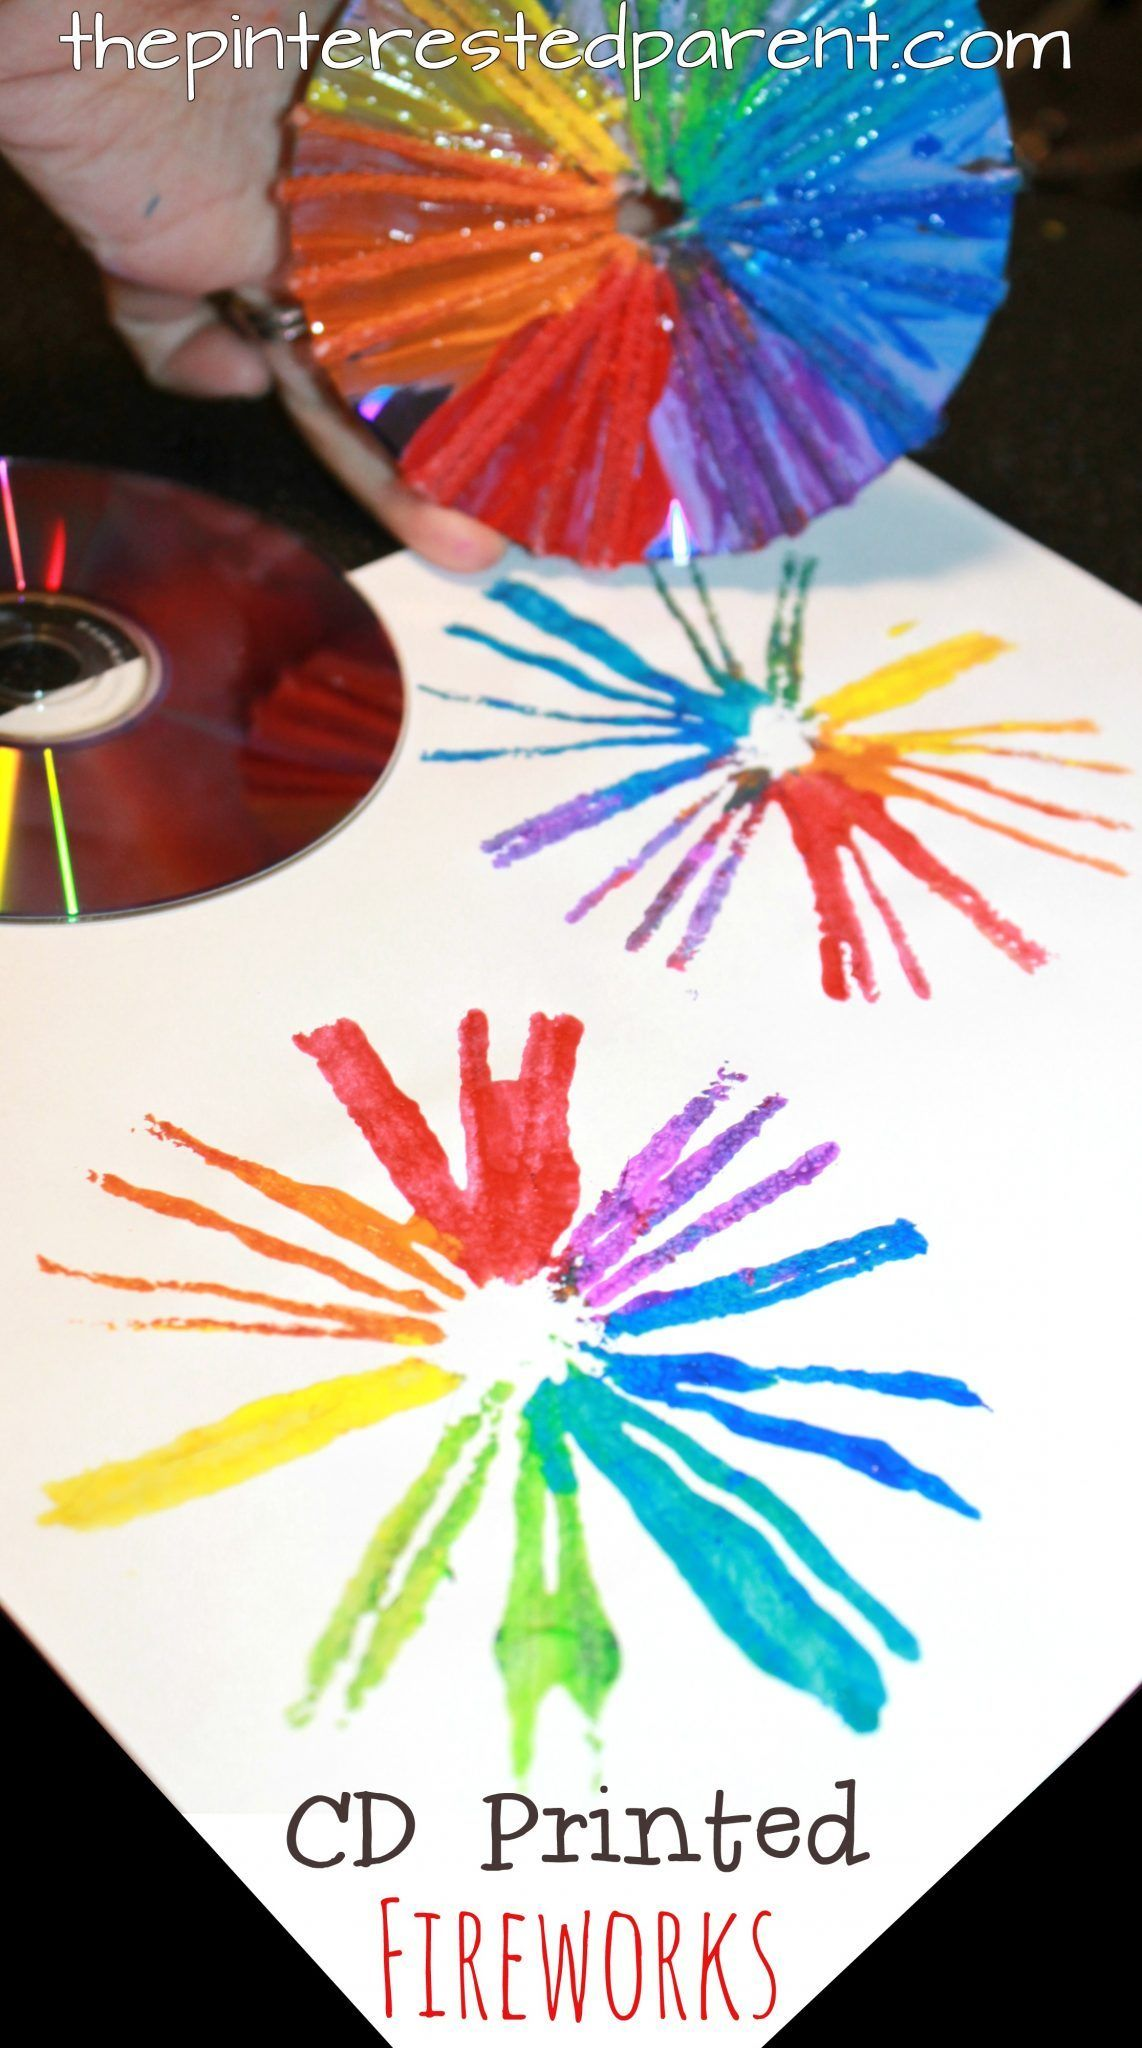 Printmaking With Cds For Kids